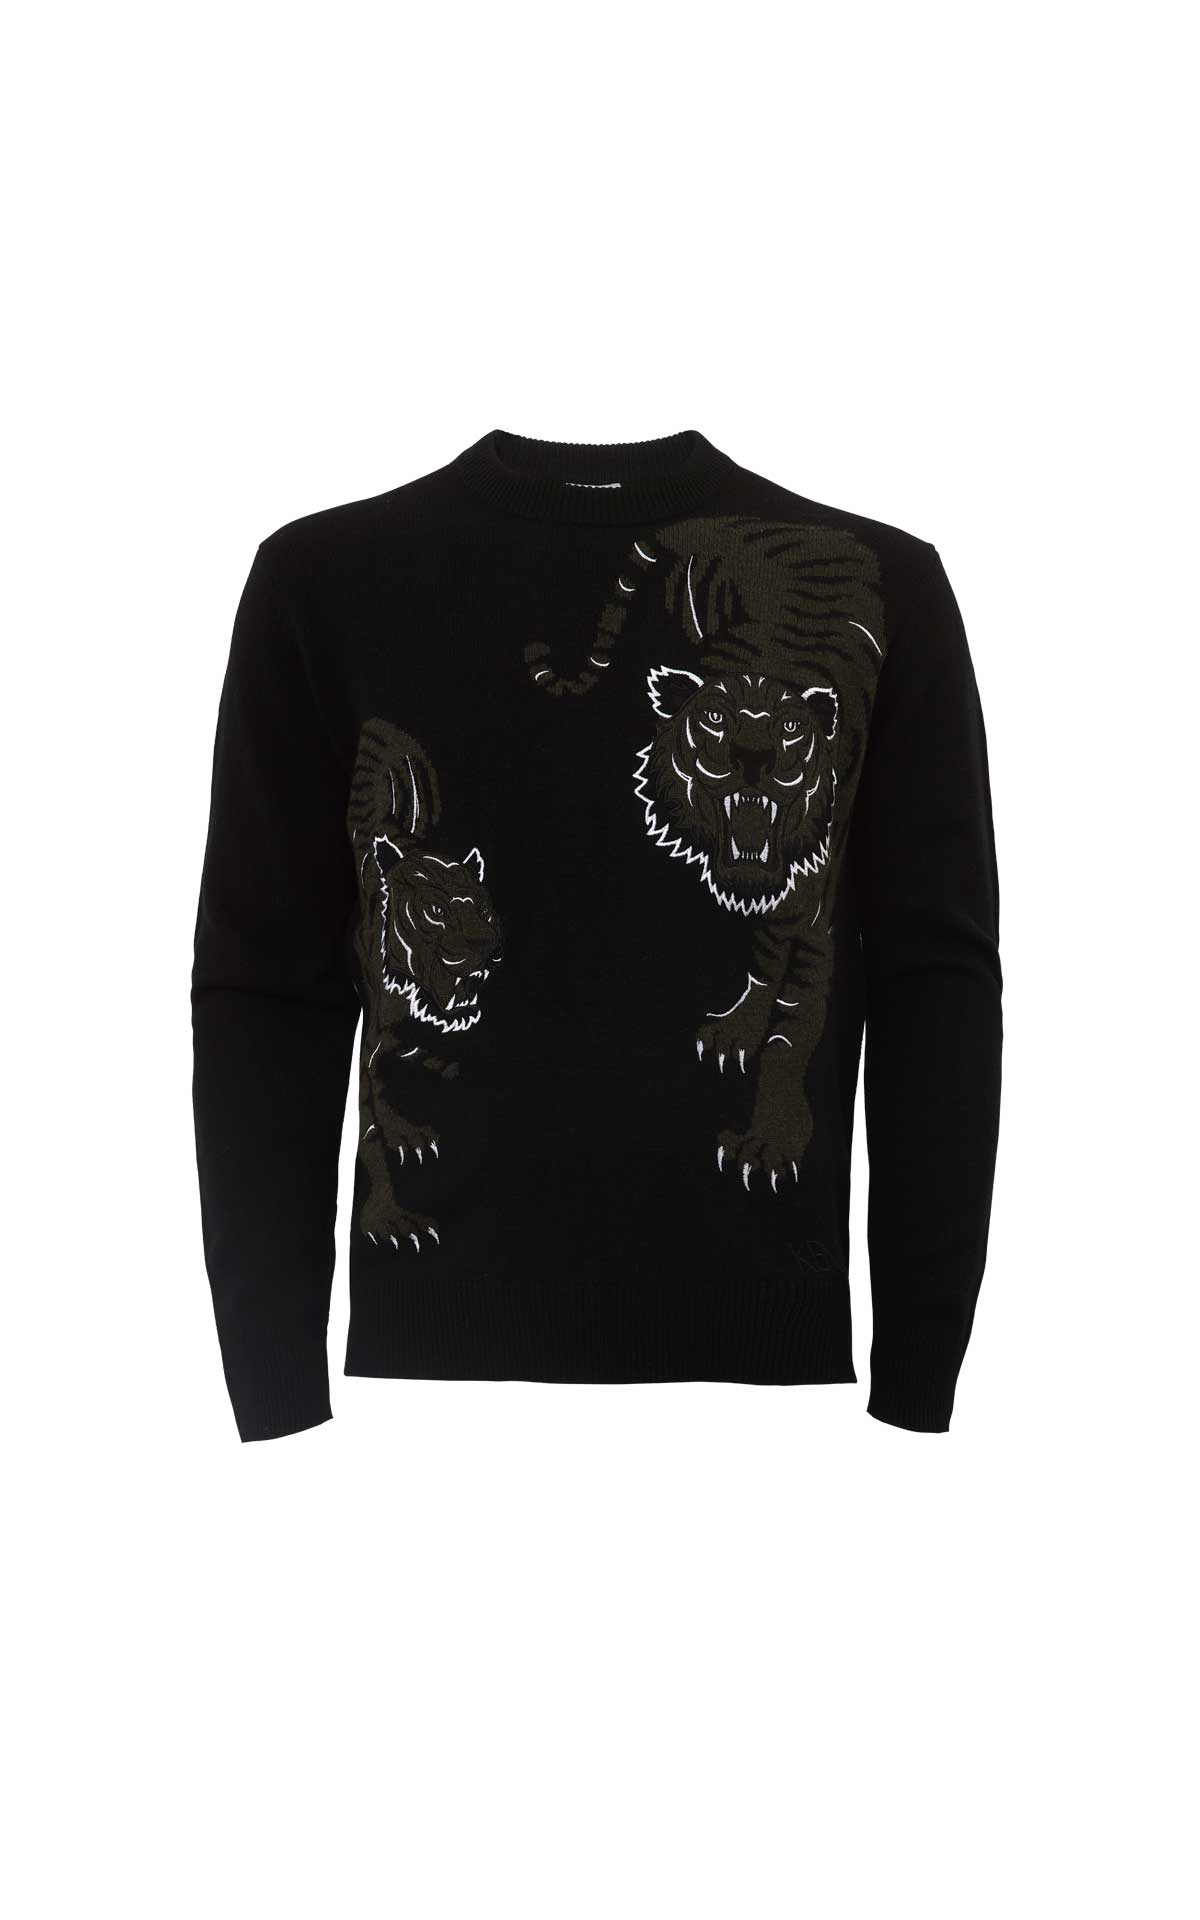 Black tigers sweater Kenzo